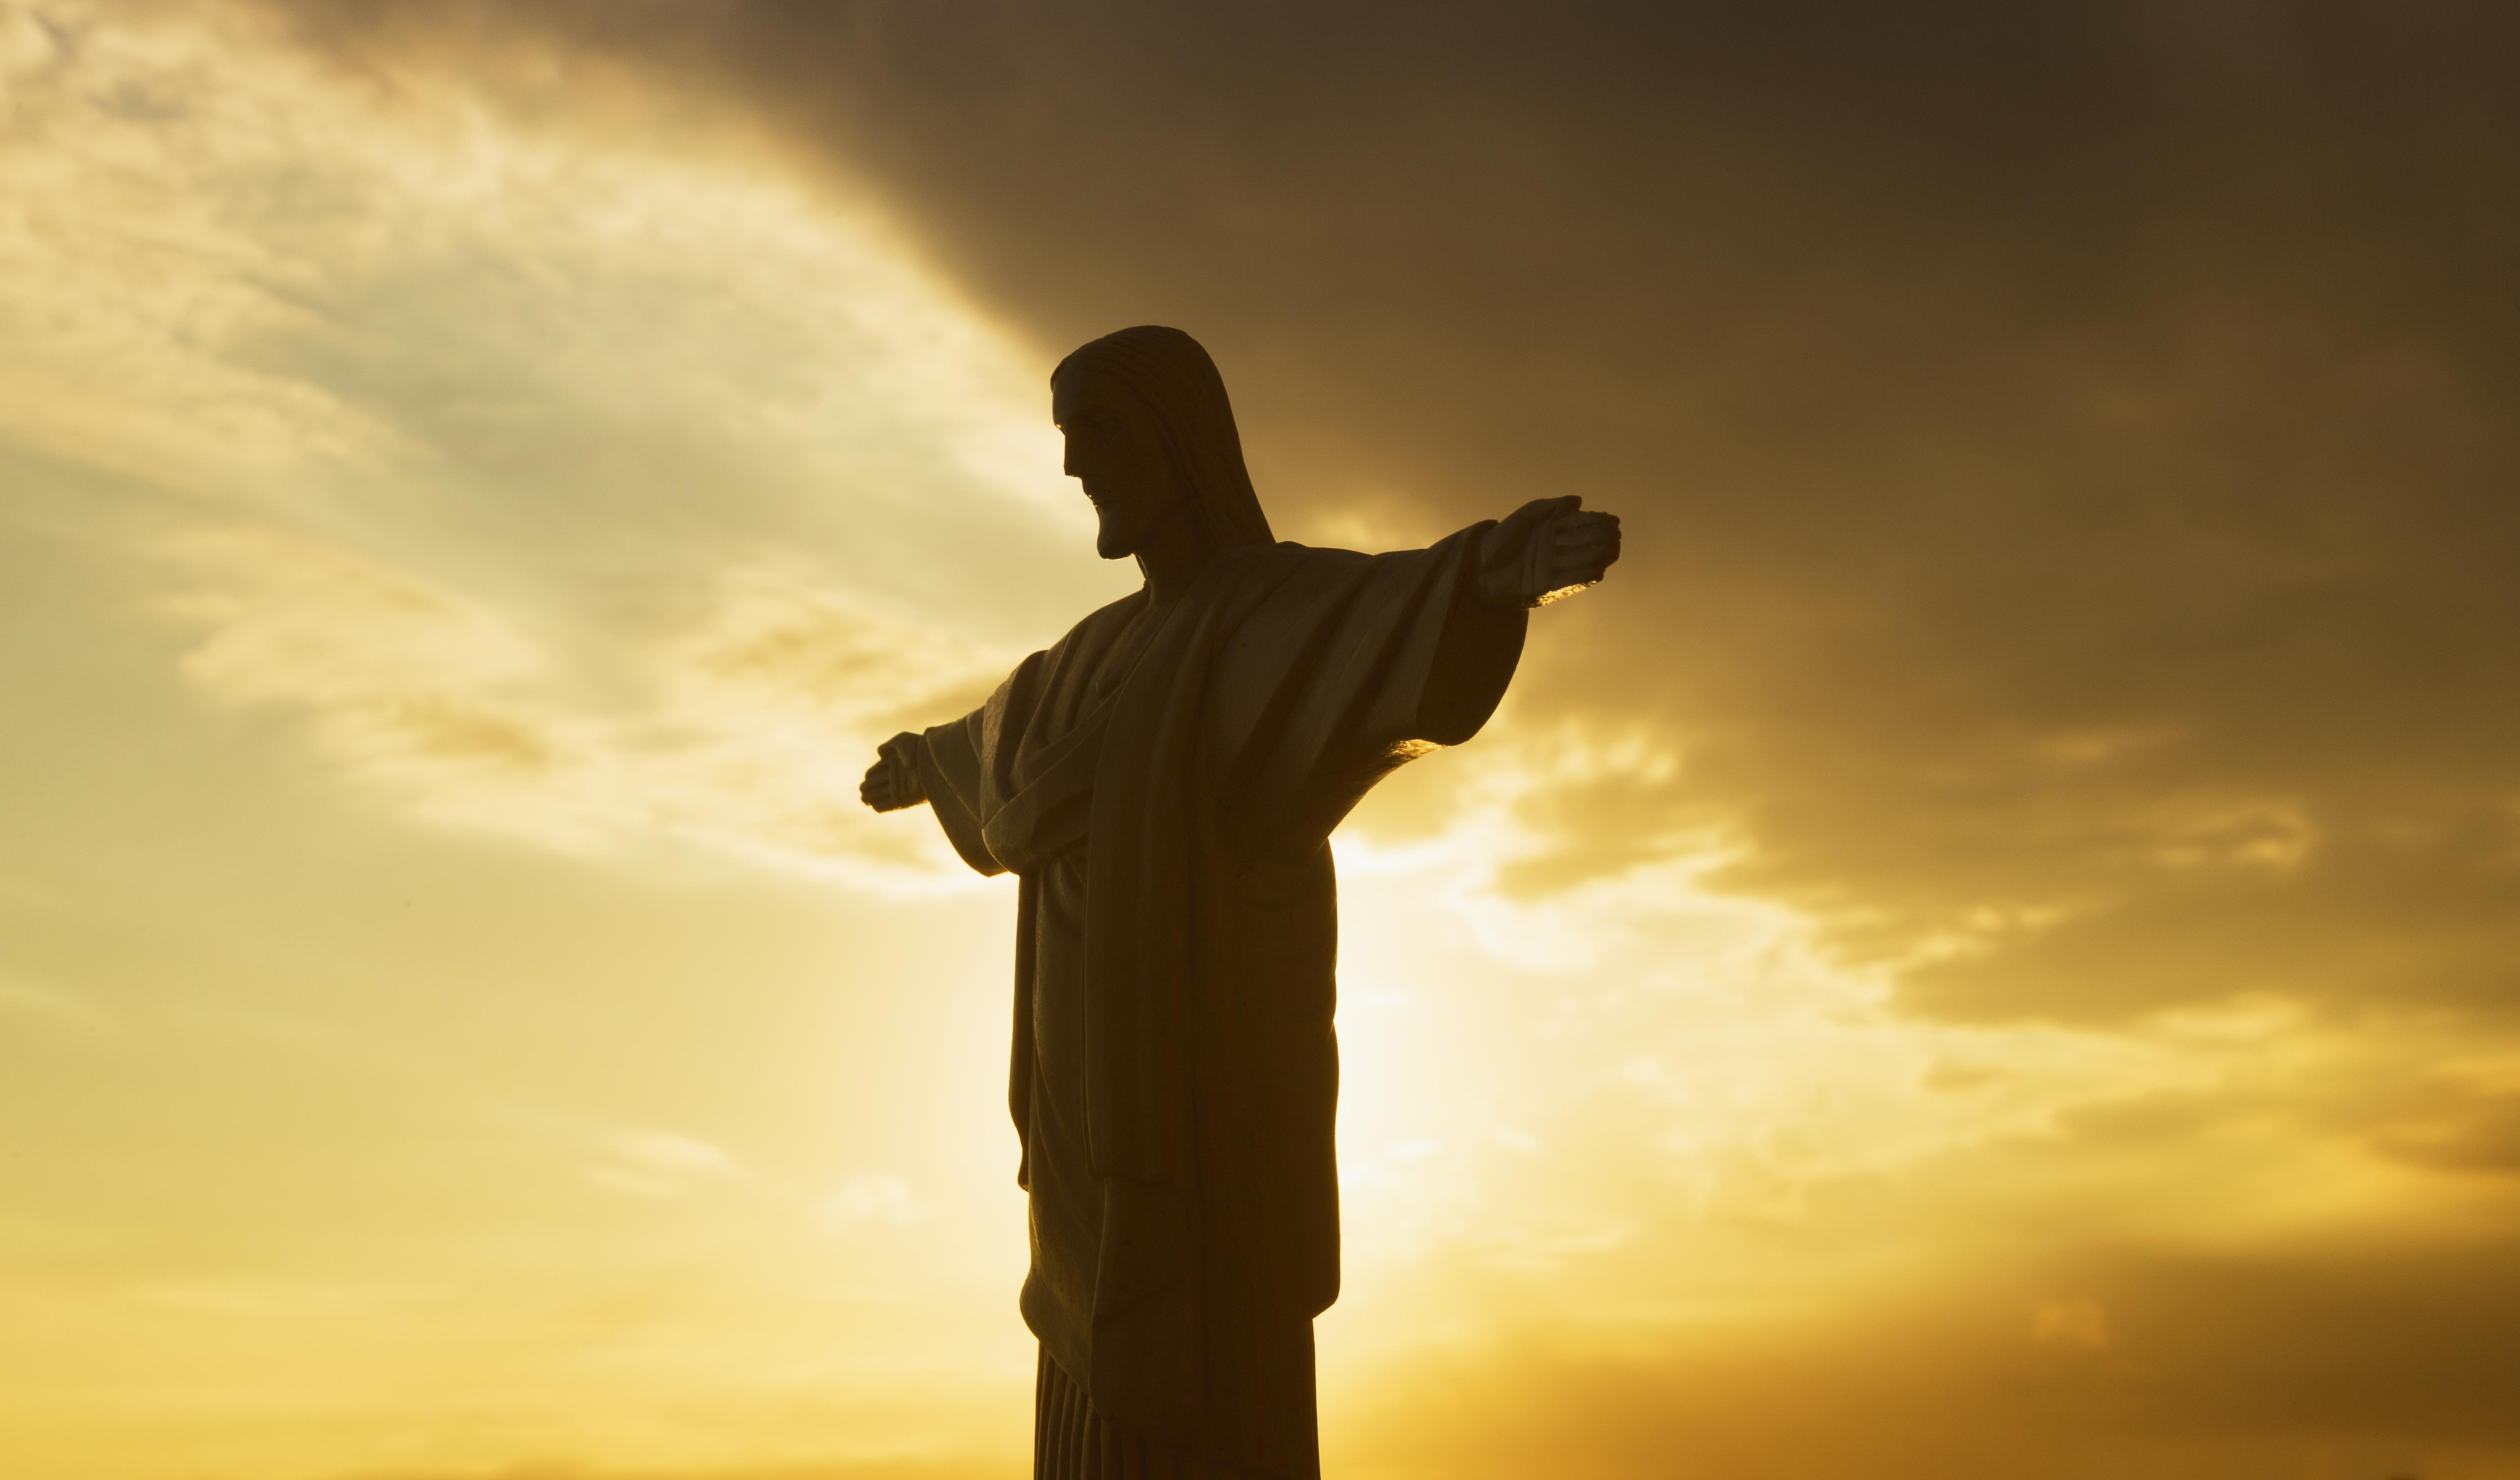 Statue of Christ the Redeemer on the Corcovado pea